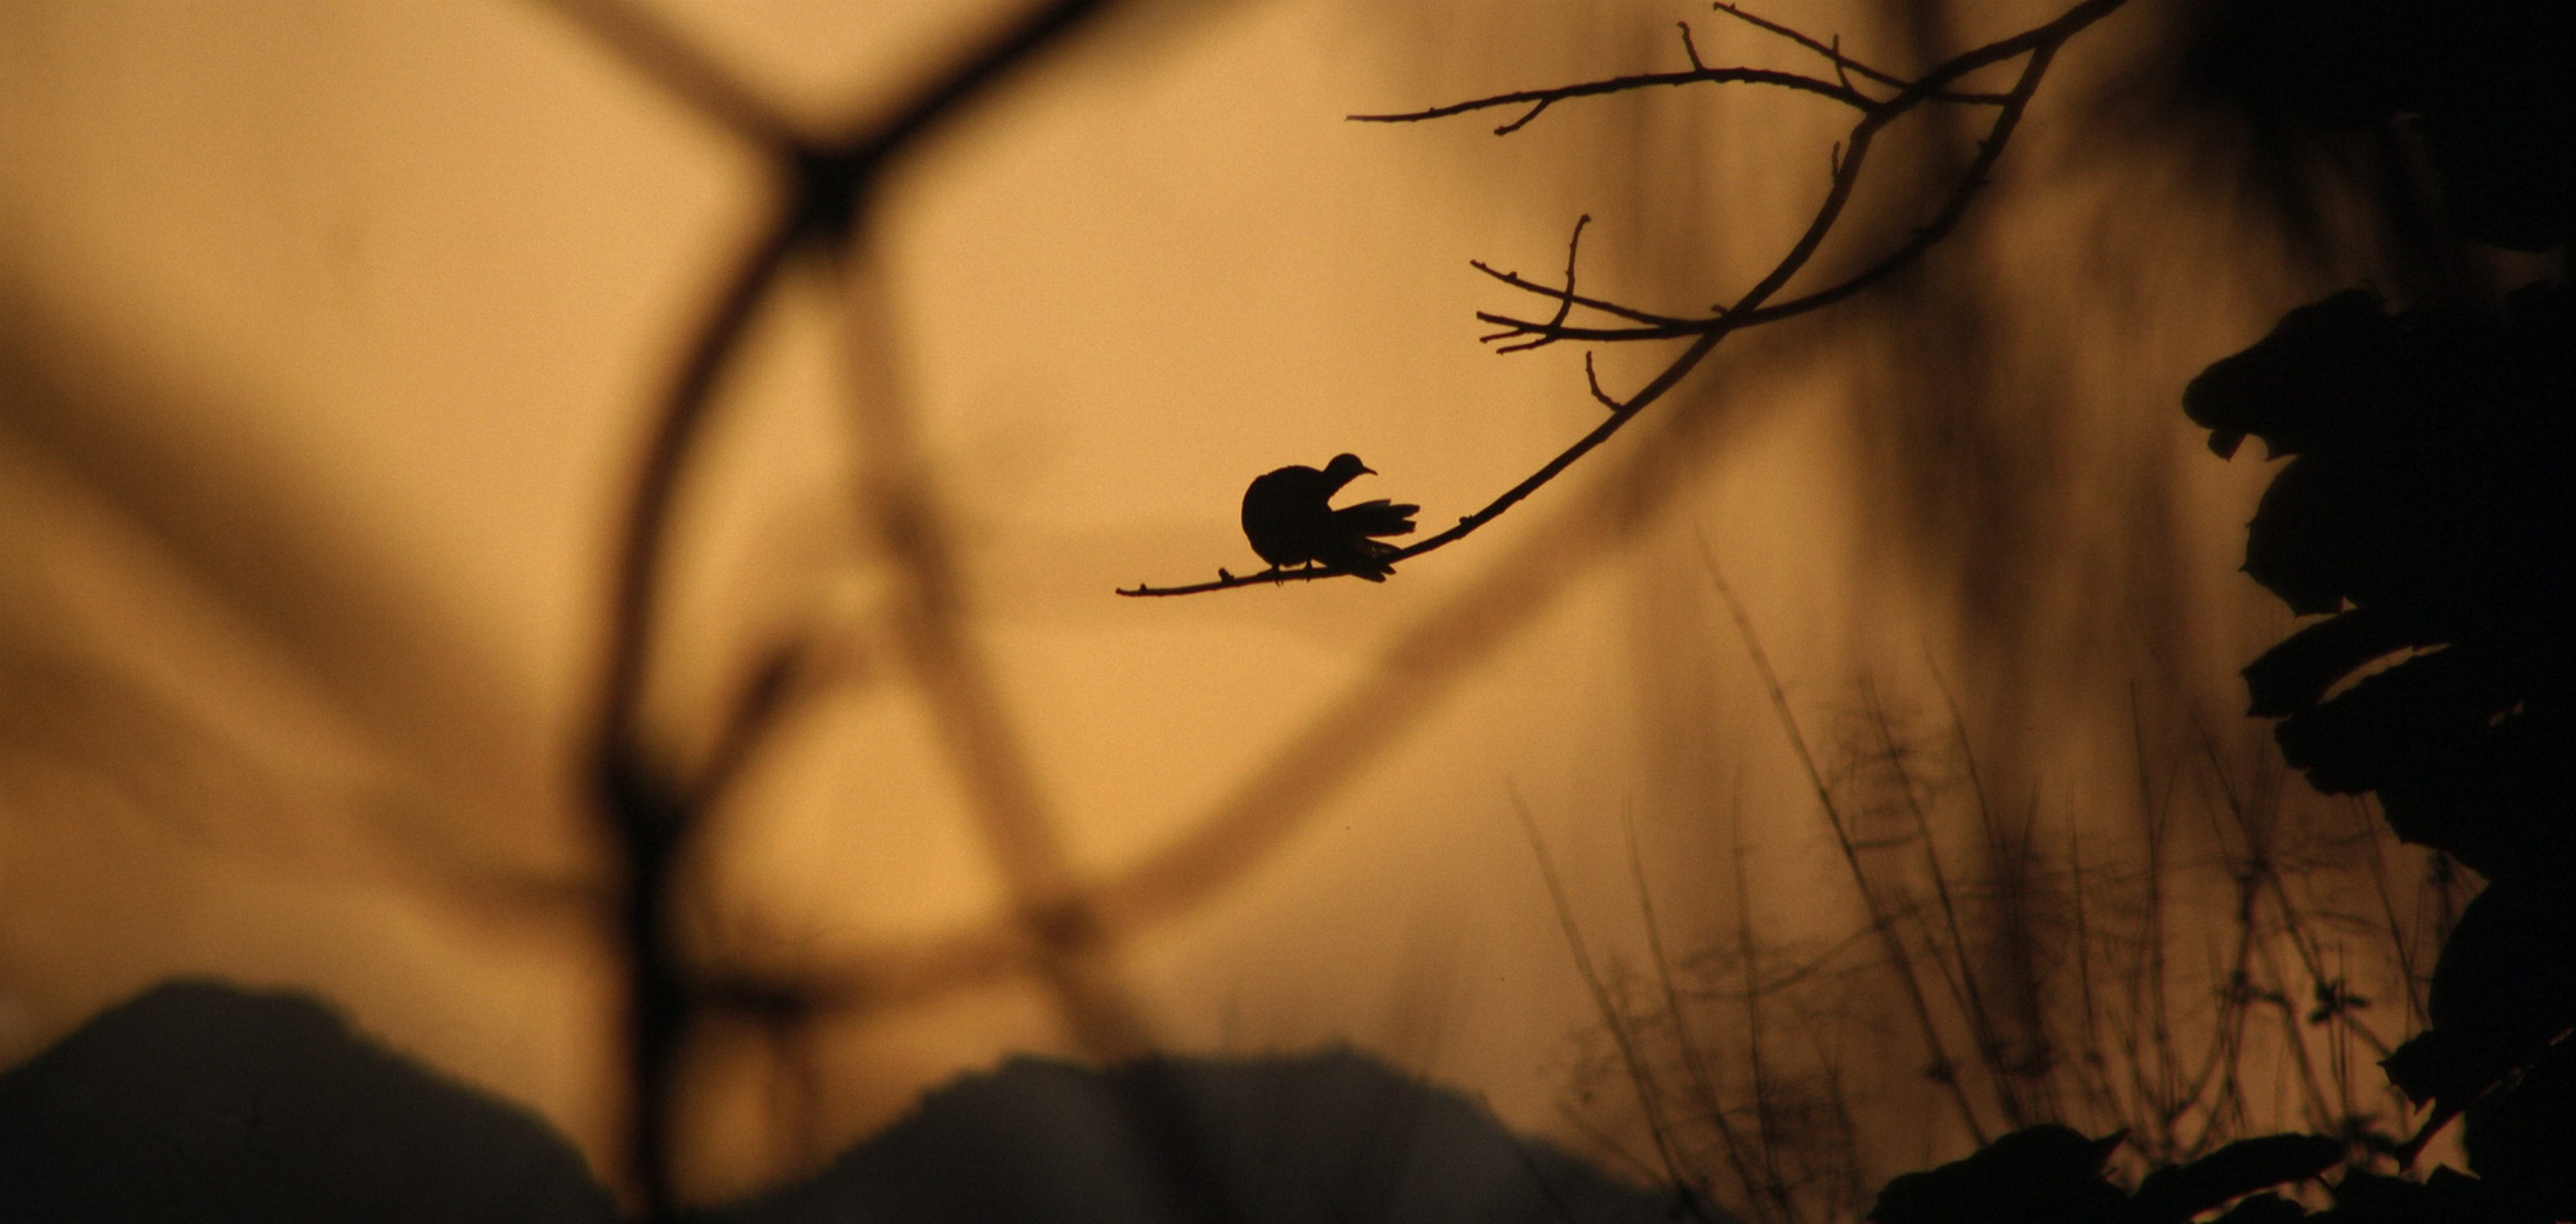 bird perched on tree branch during golden hour